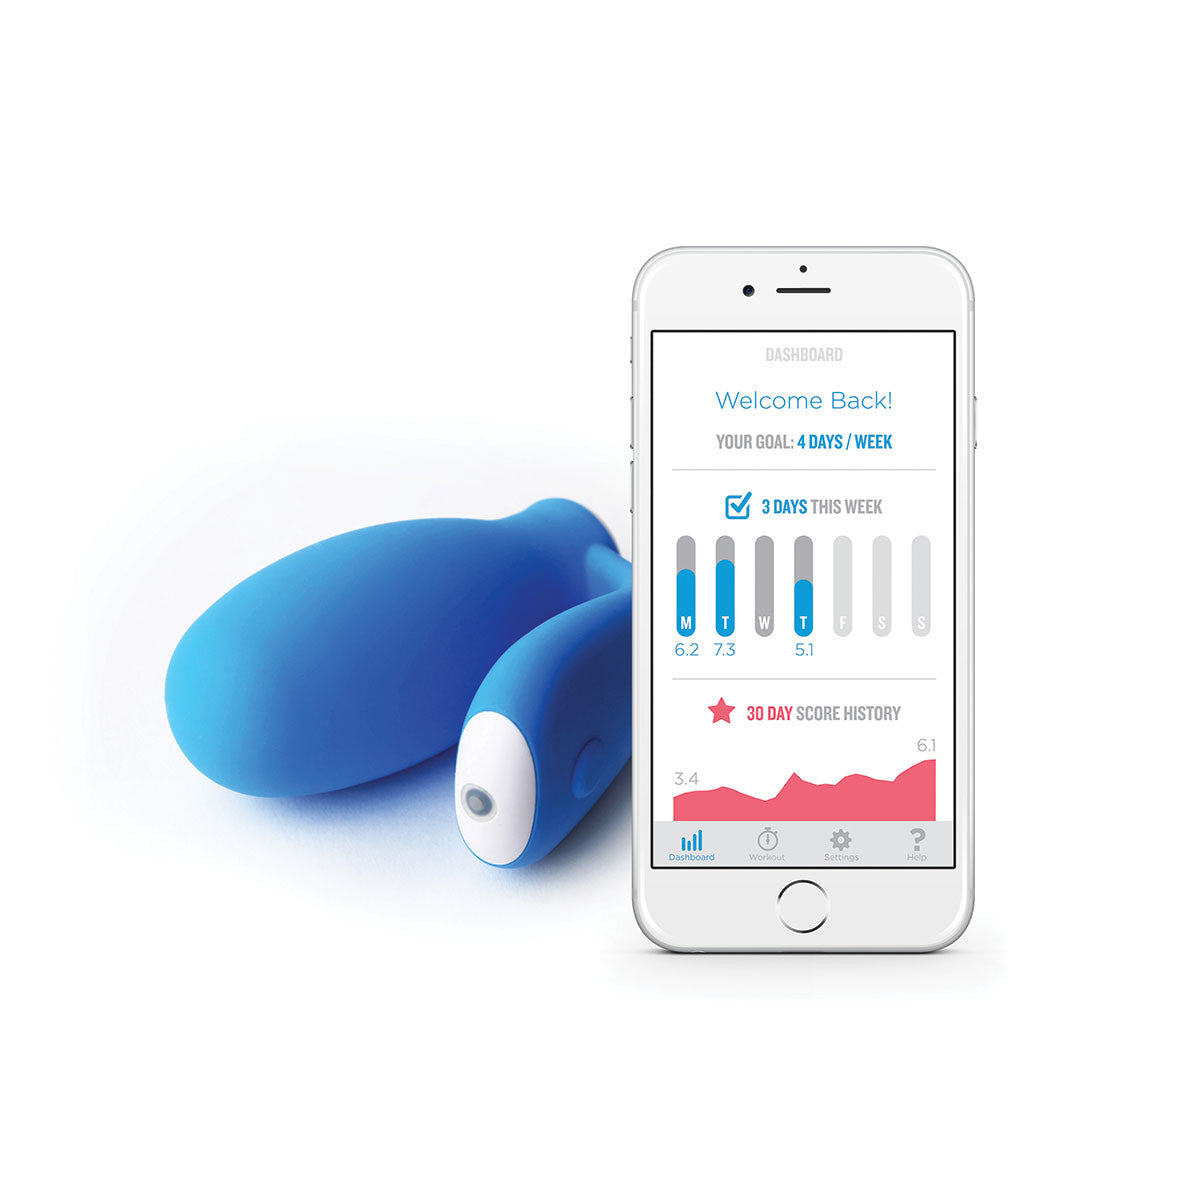 kGoal Smart Kegel Trainer by Minna - Sky Blue with smart phone